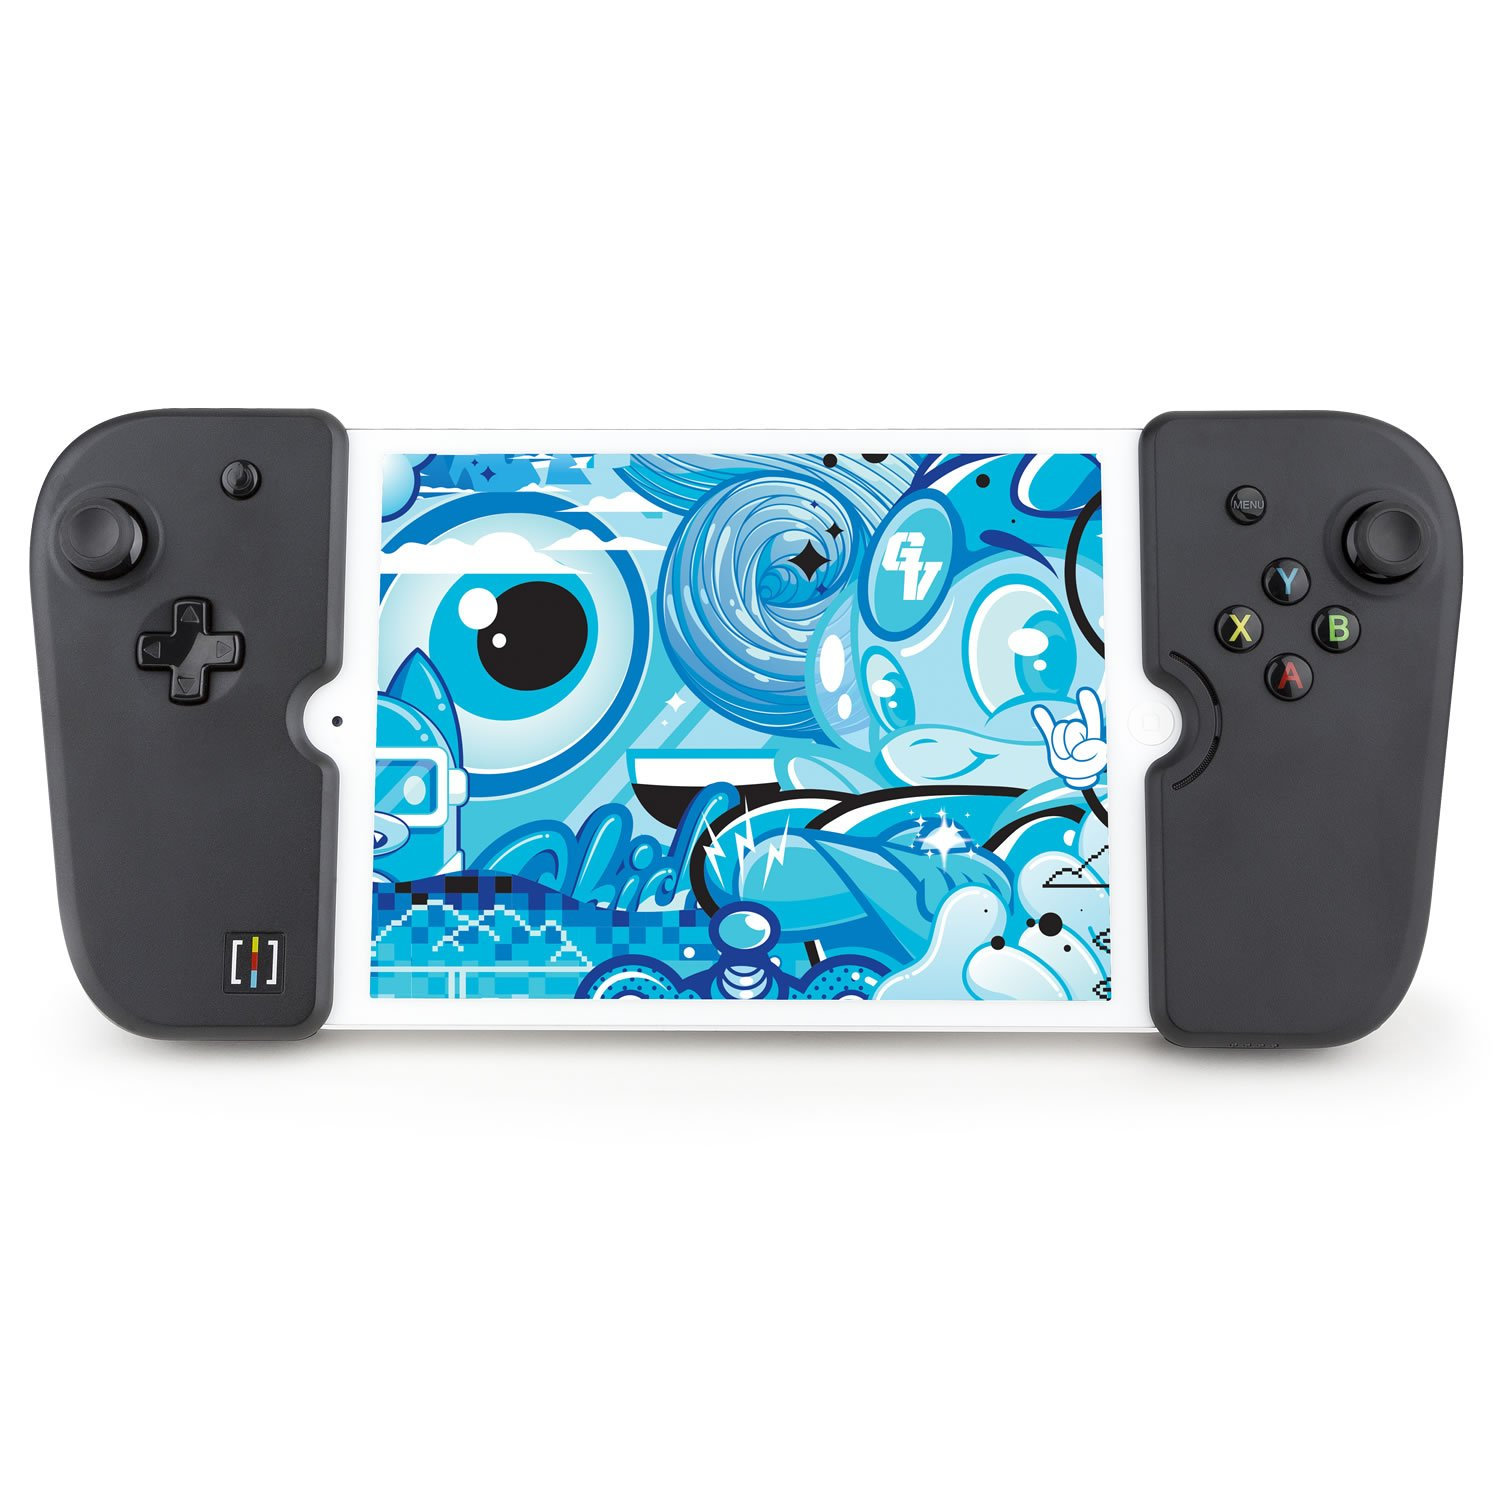 Gamevice Controller for iPad mini (2016 Model) by Gamevice